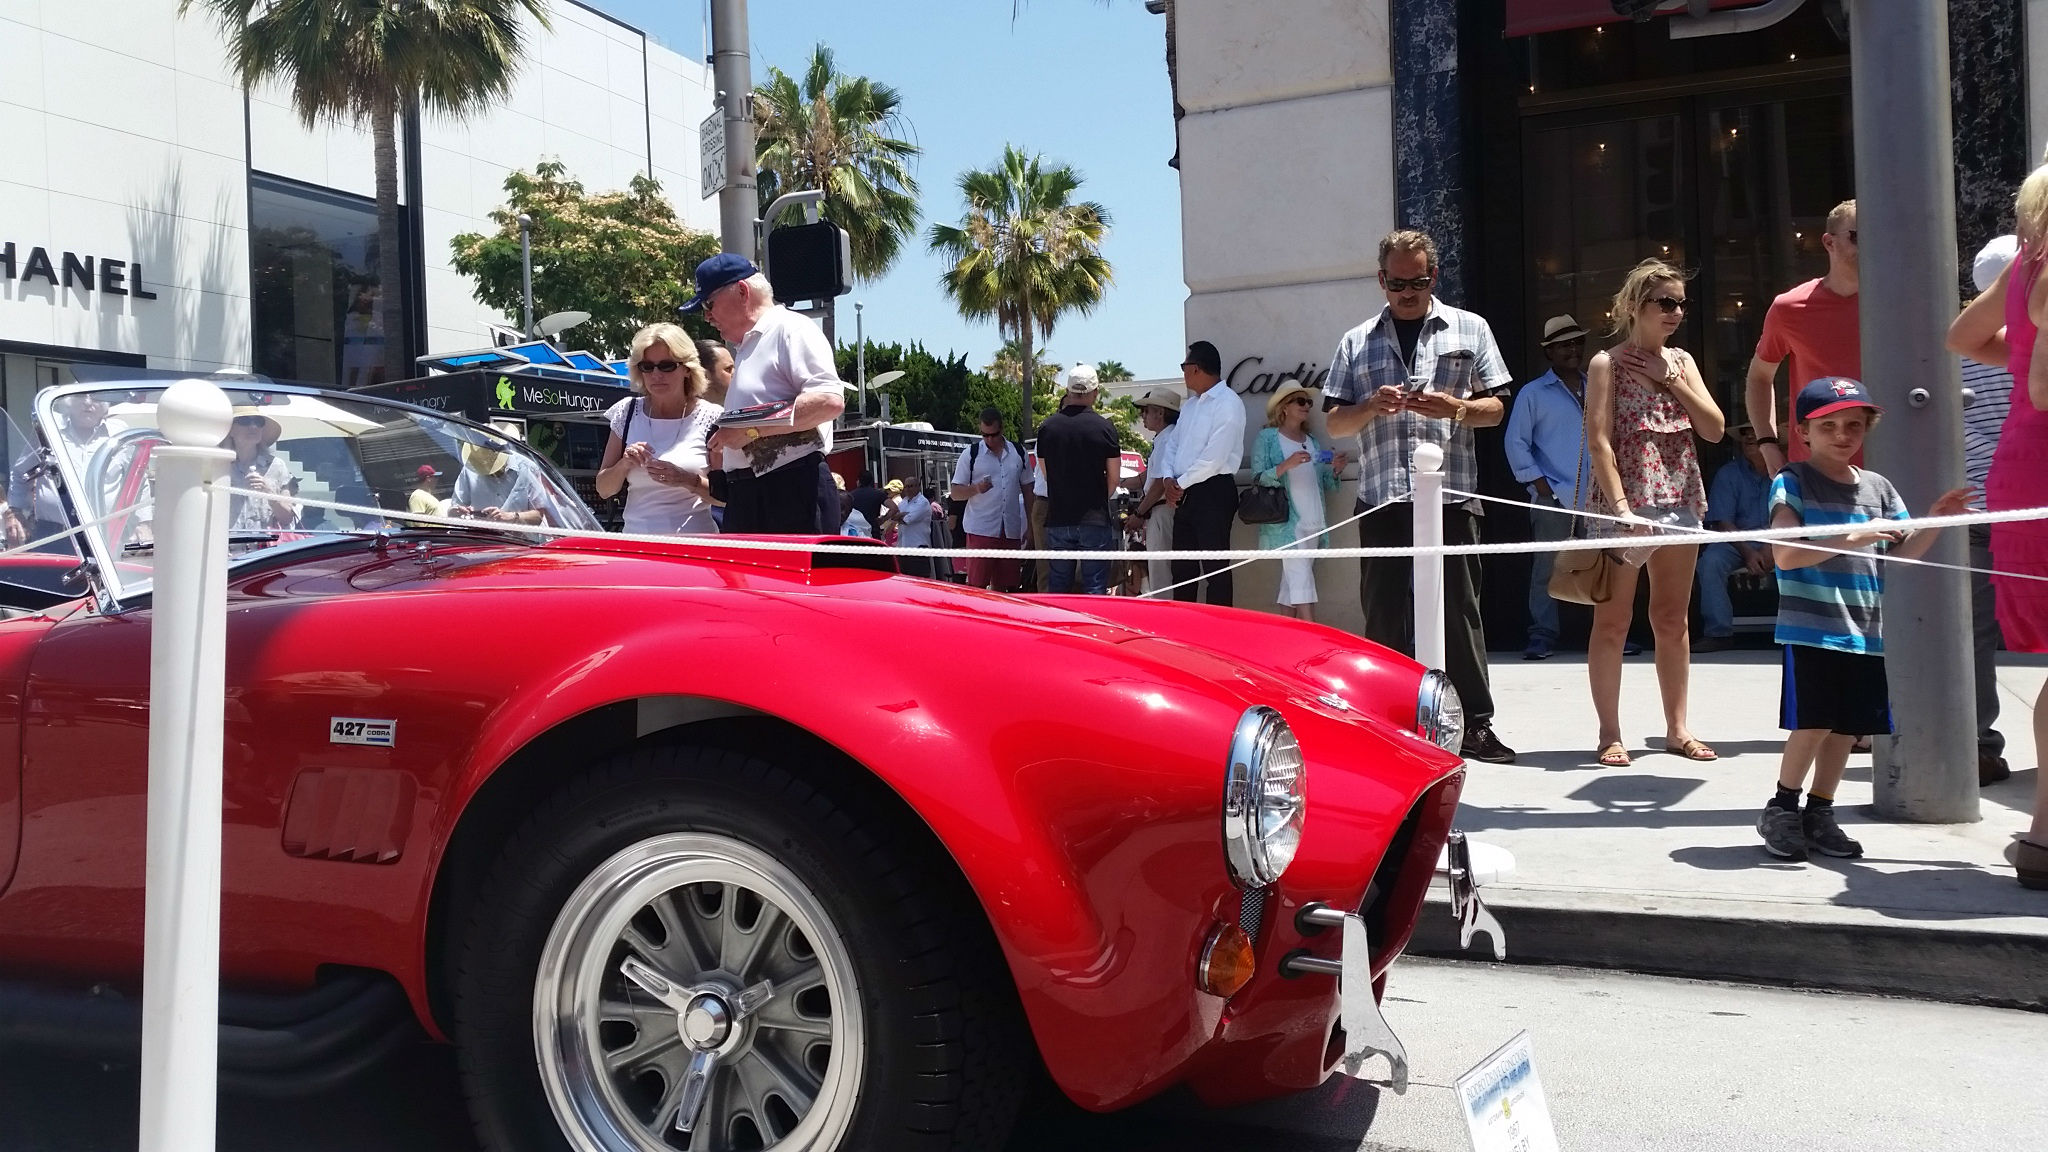 PARKING ON GRASS IS THE RODEO DRIVE CONCOURS DELEGANCE THE BEST - Beverly hills car show